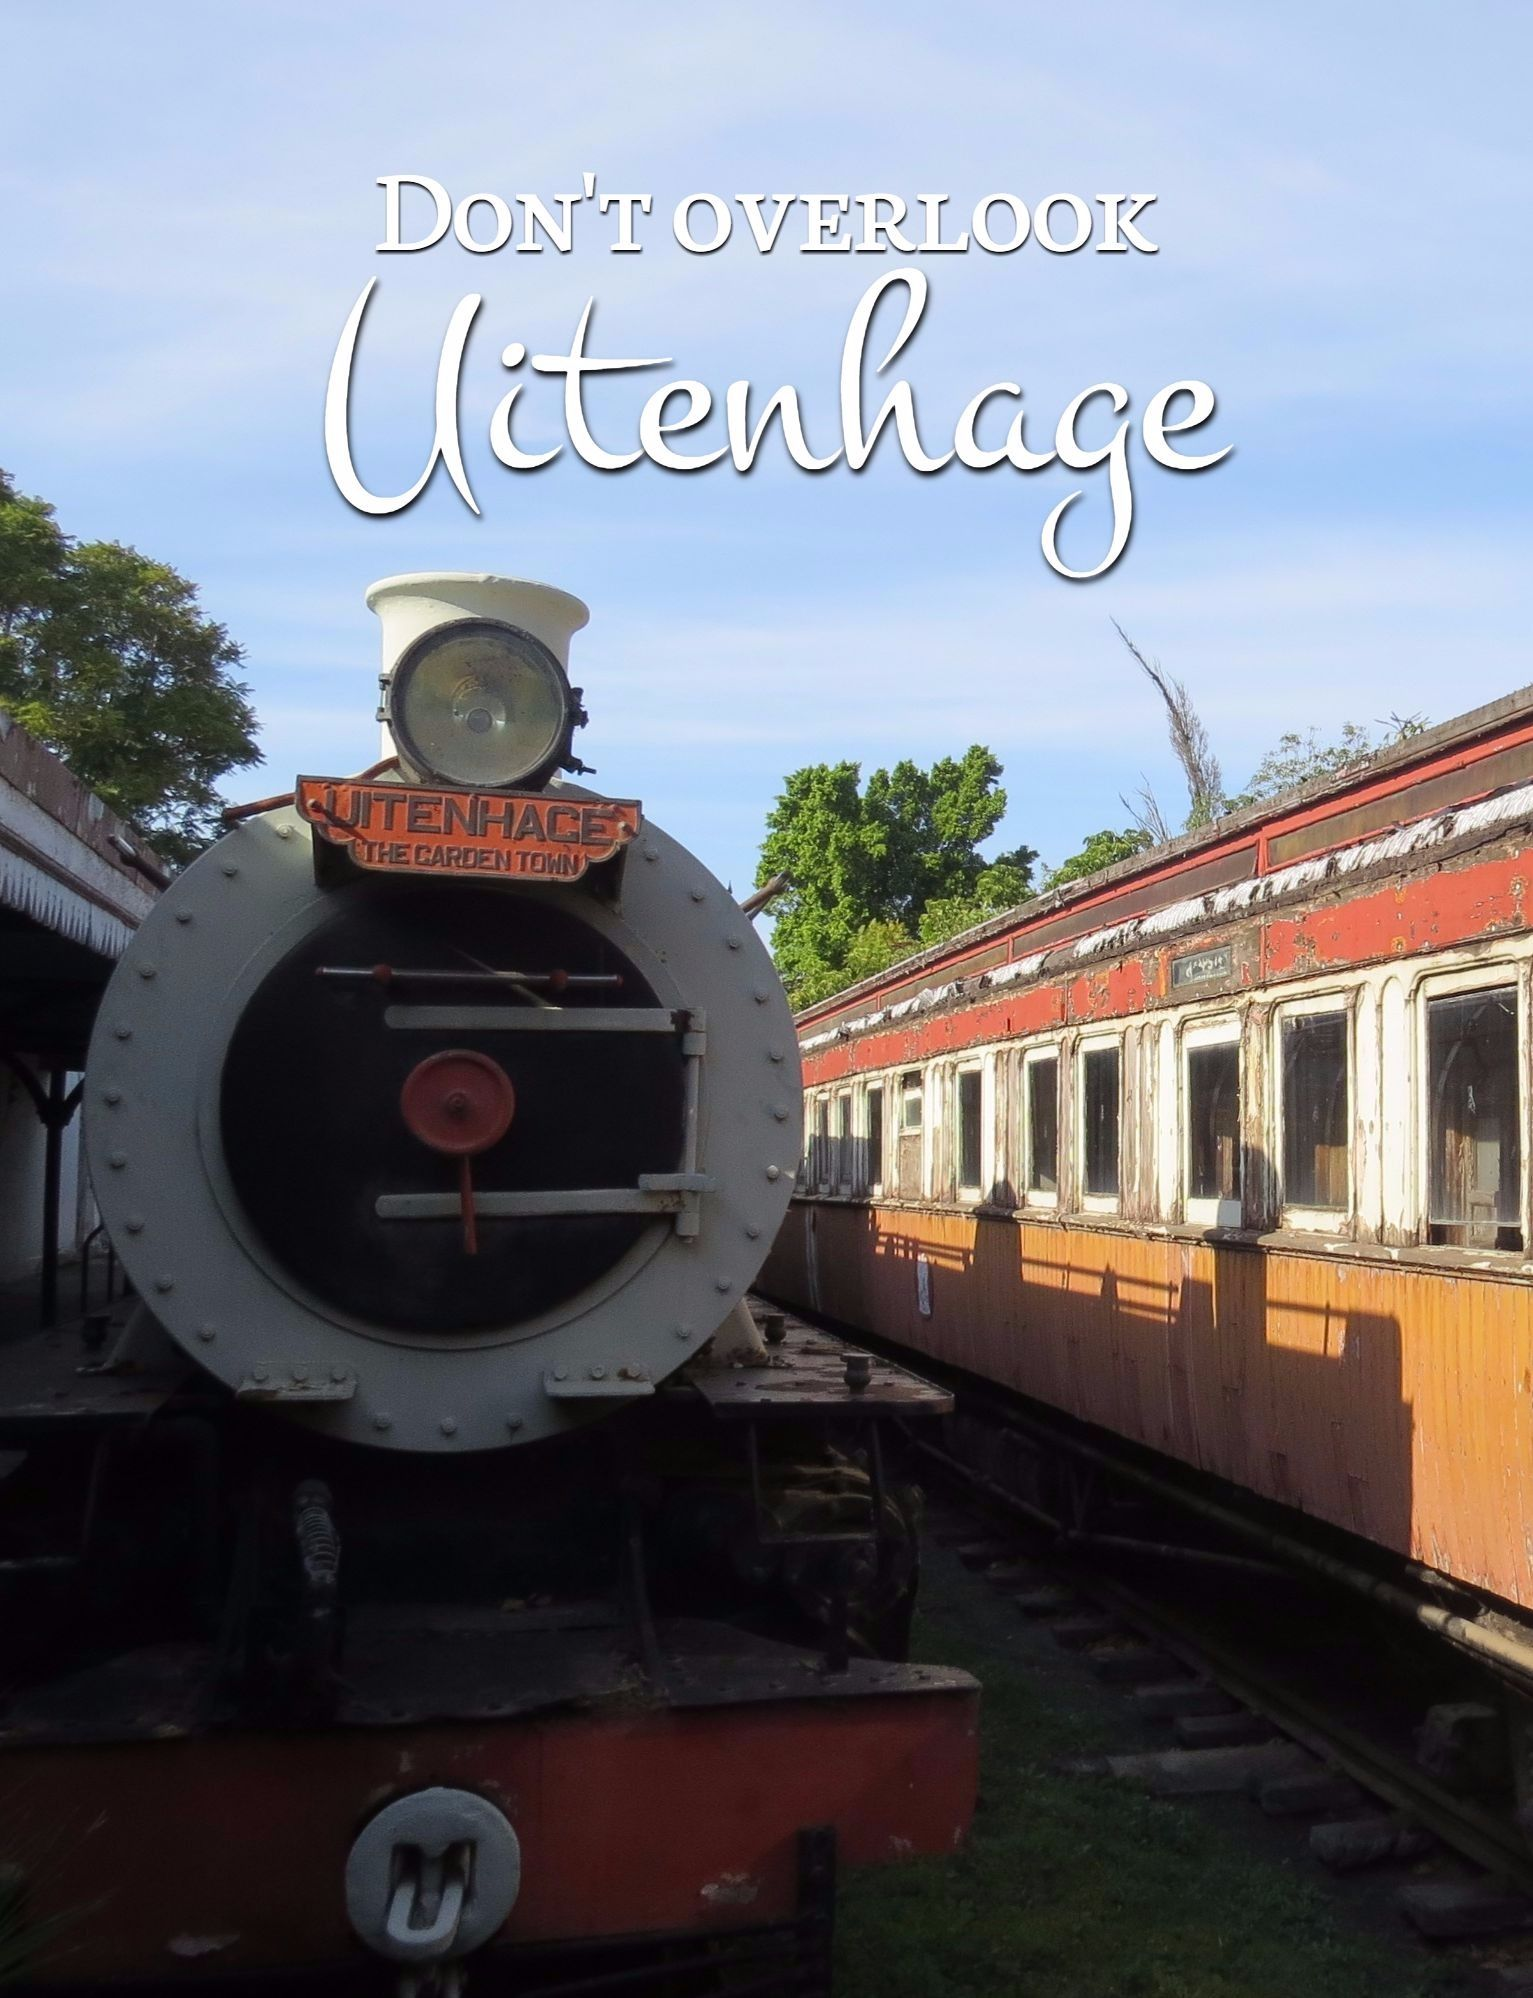 Visit Uitenhage; there's more to Nelson Mandela Bay than